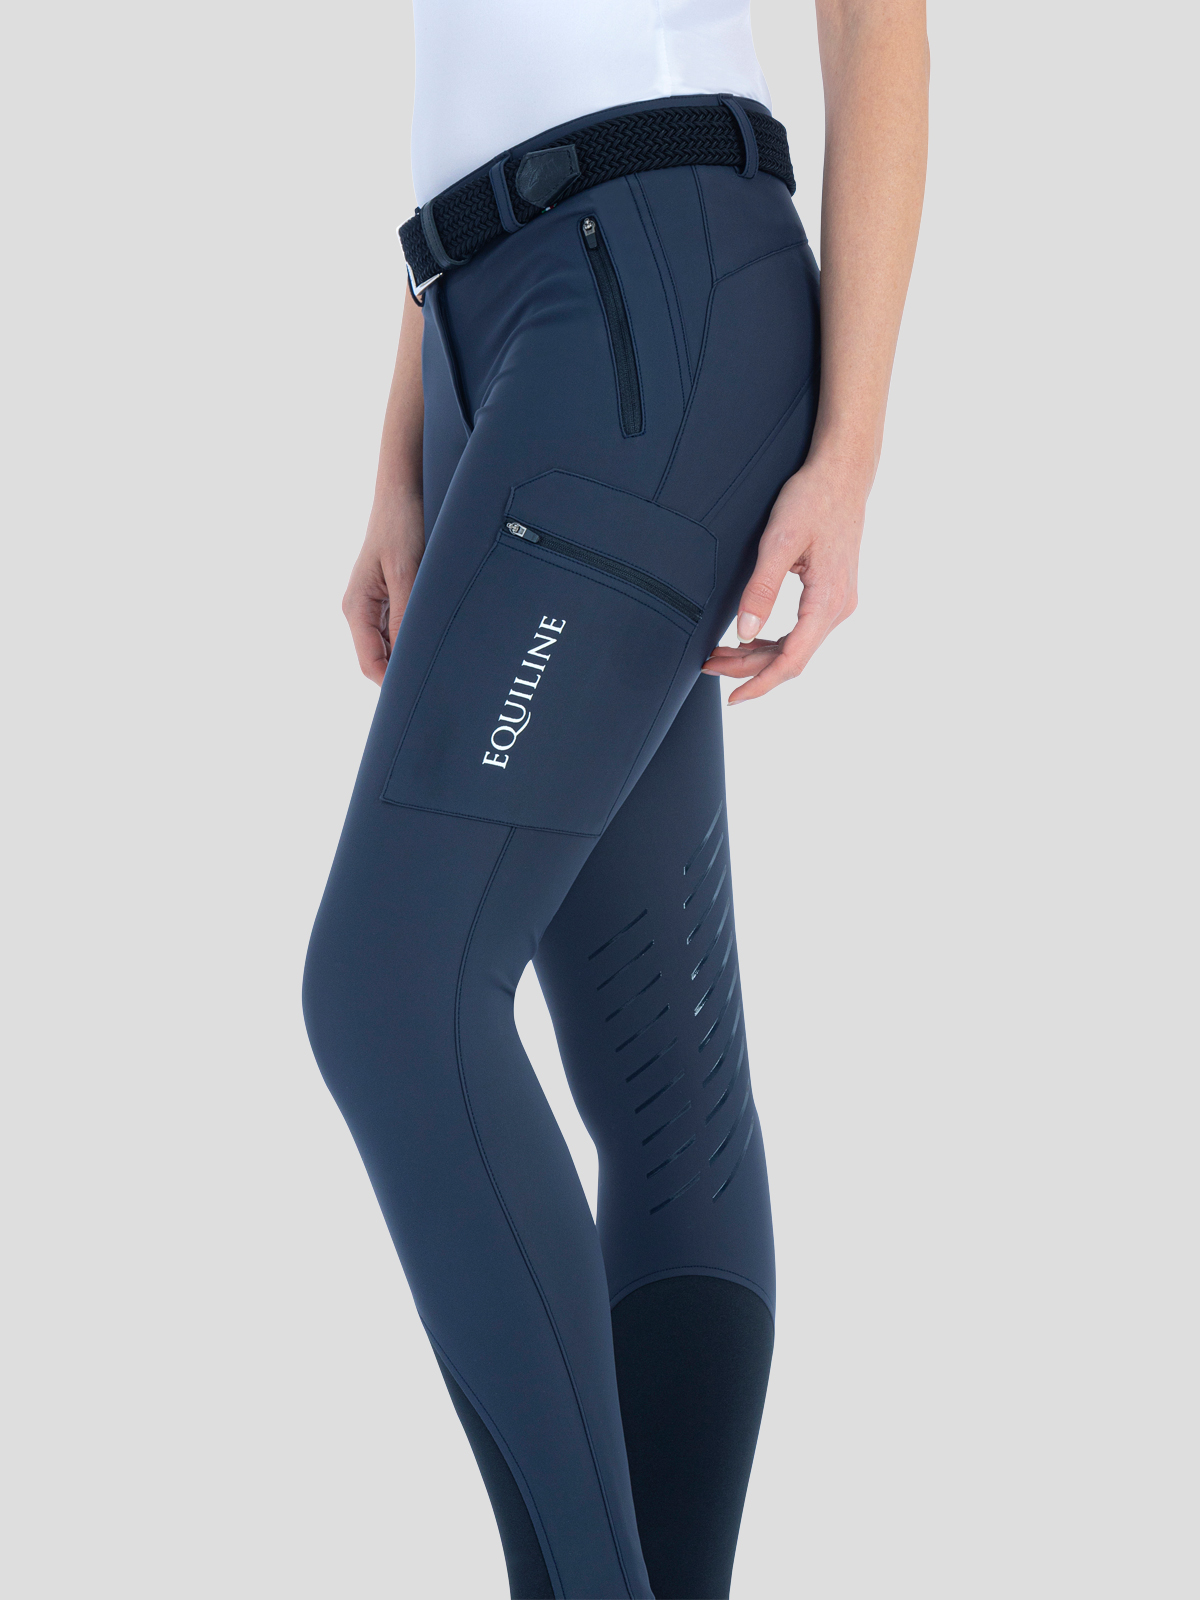 ChantalC Women's Cargo Breeches with Knee Grip in B-Move 1